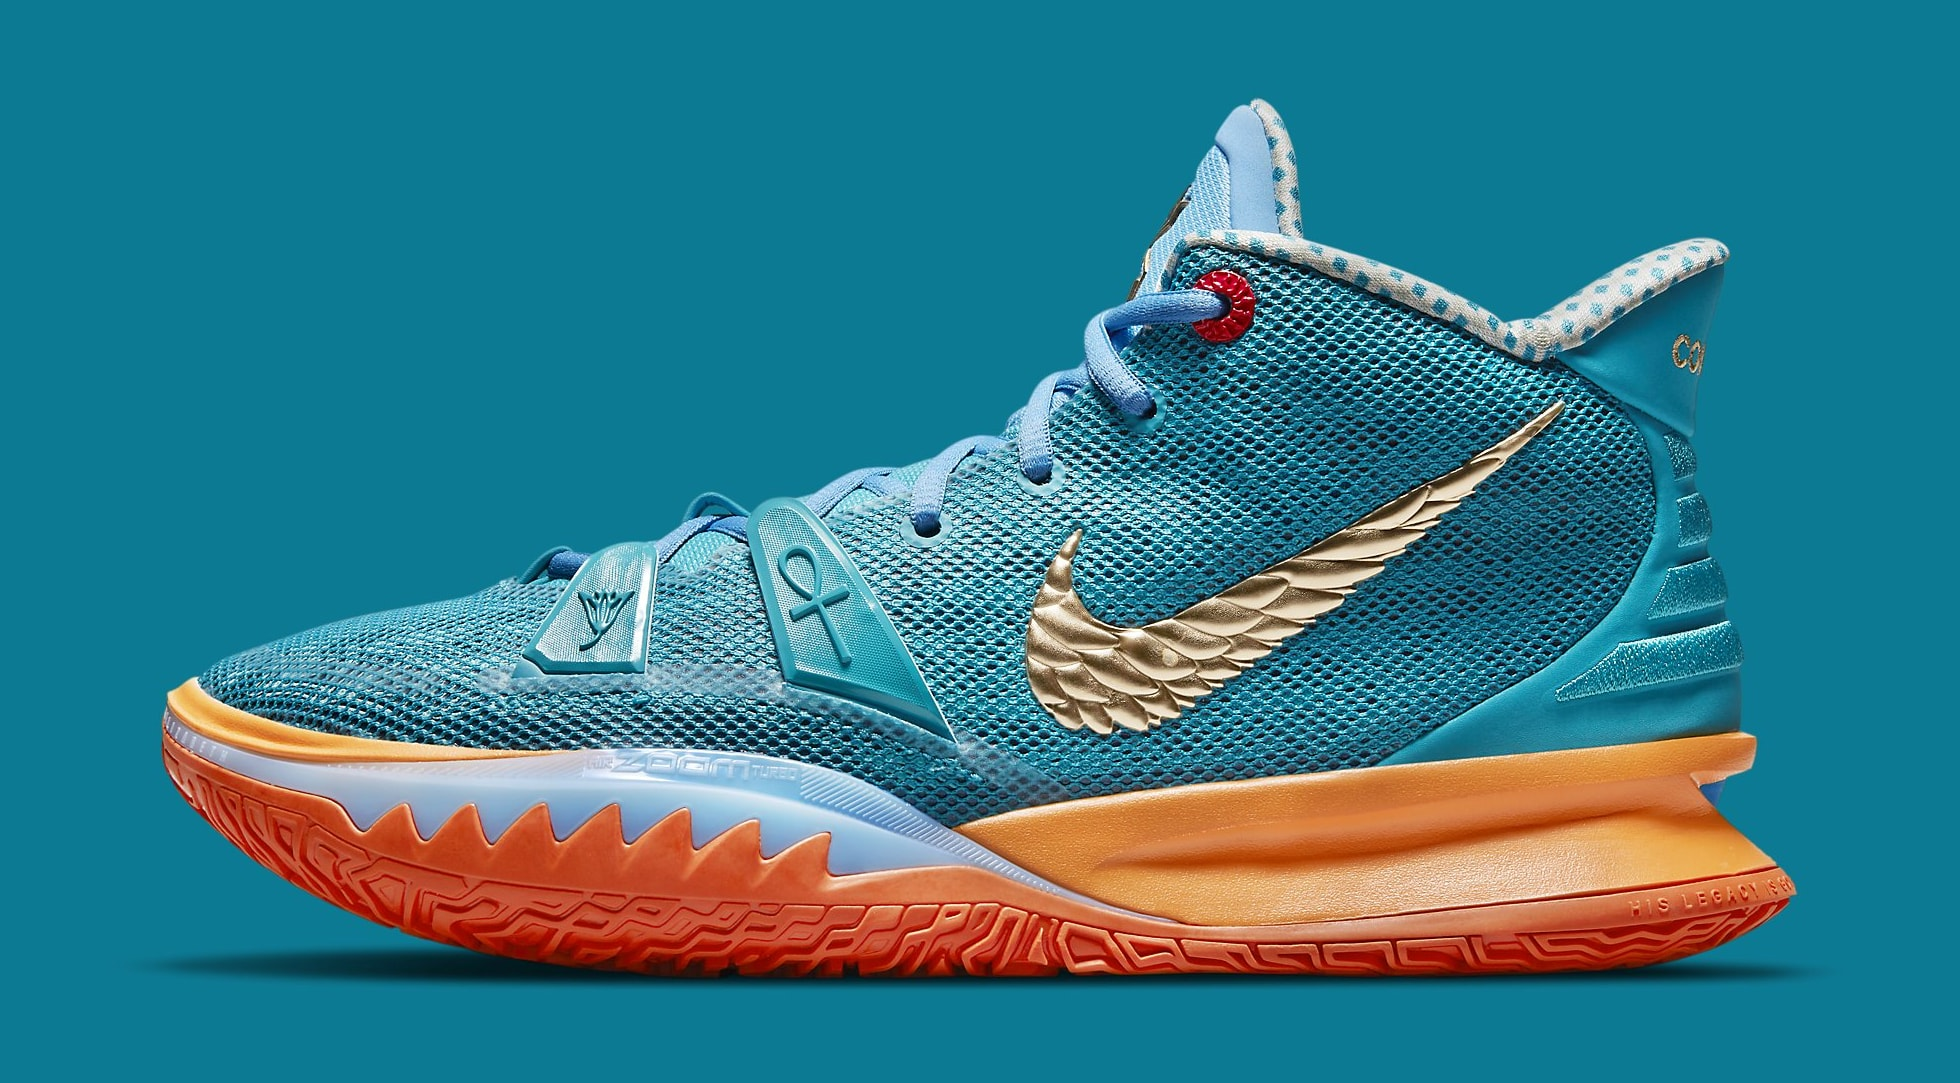 Concepts x Nike Kyrie 7 CT1137-900 Lateral